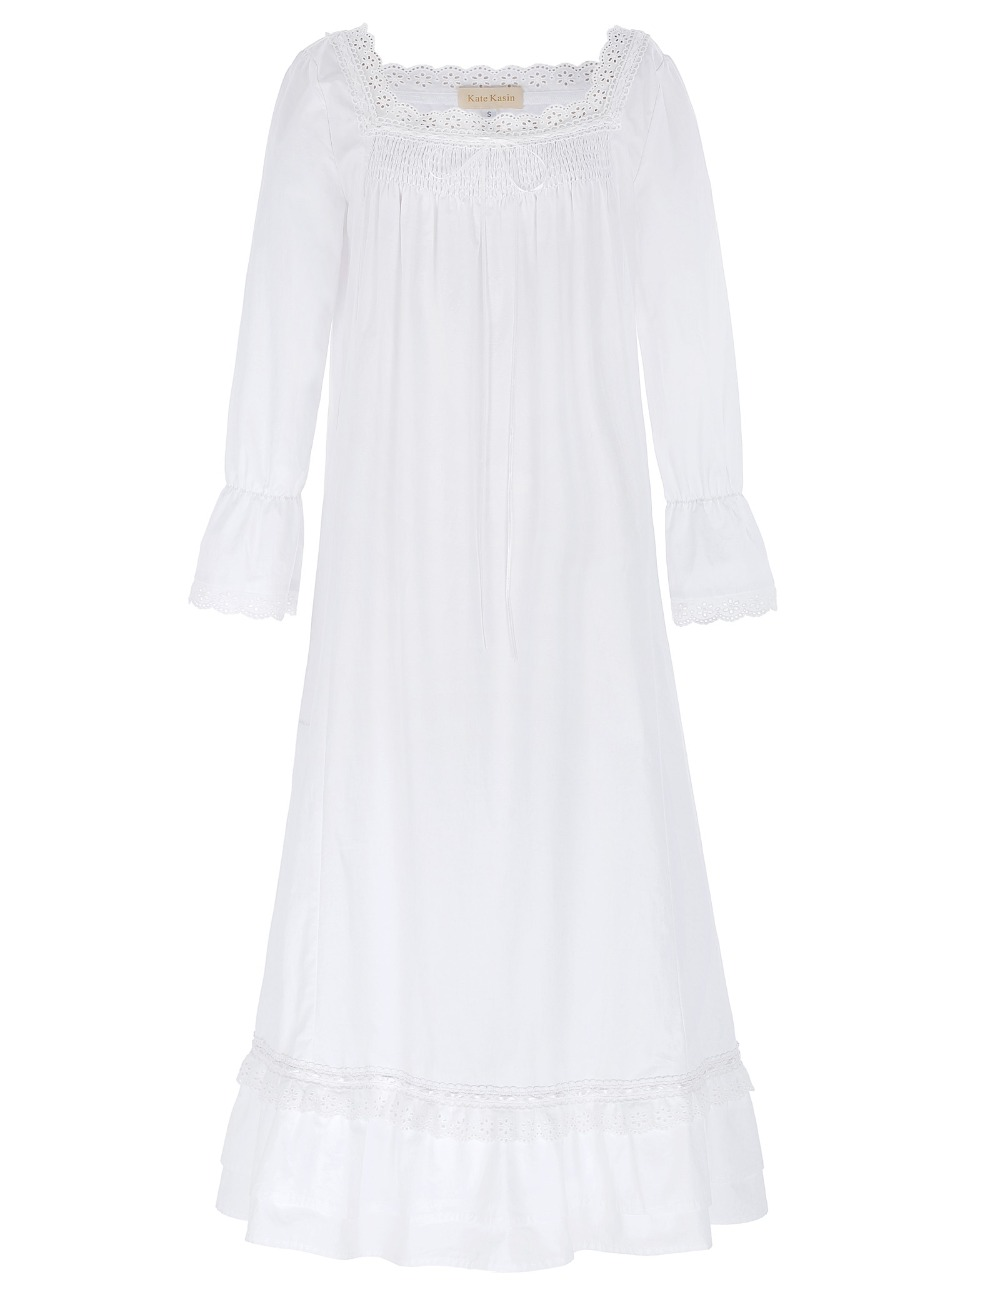 Women Ladies Nightgowns 2017 New Arrival Victorian Style Sexy White Color Long Sleeve Square Neck Cotton